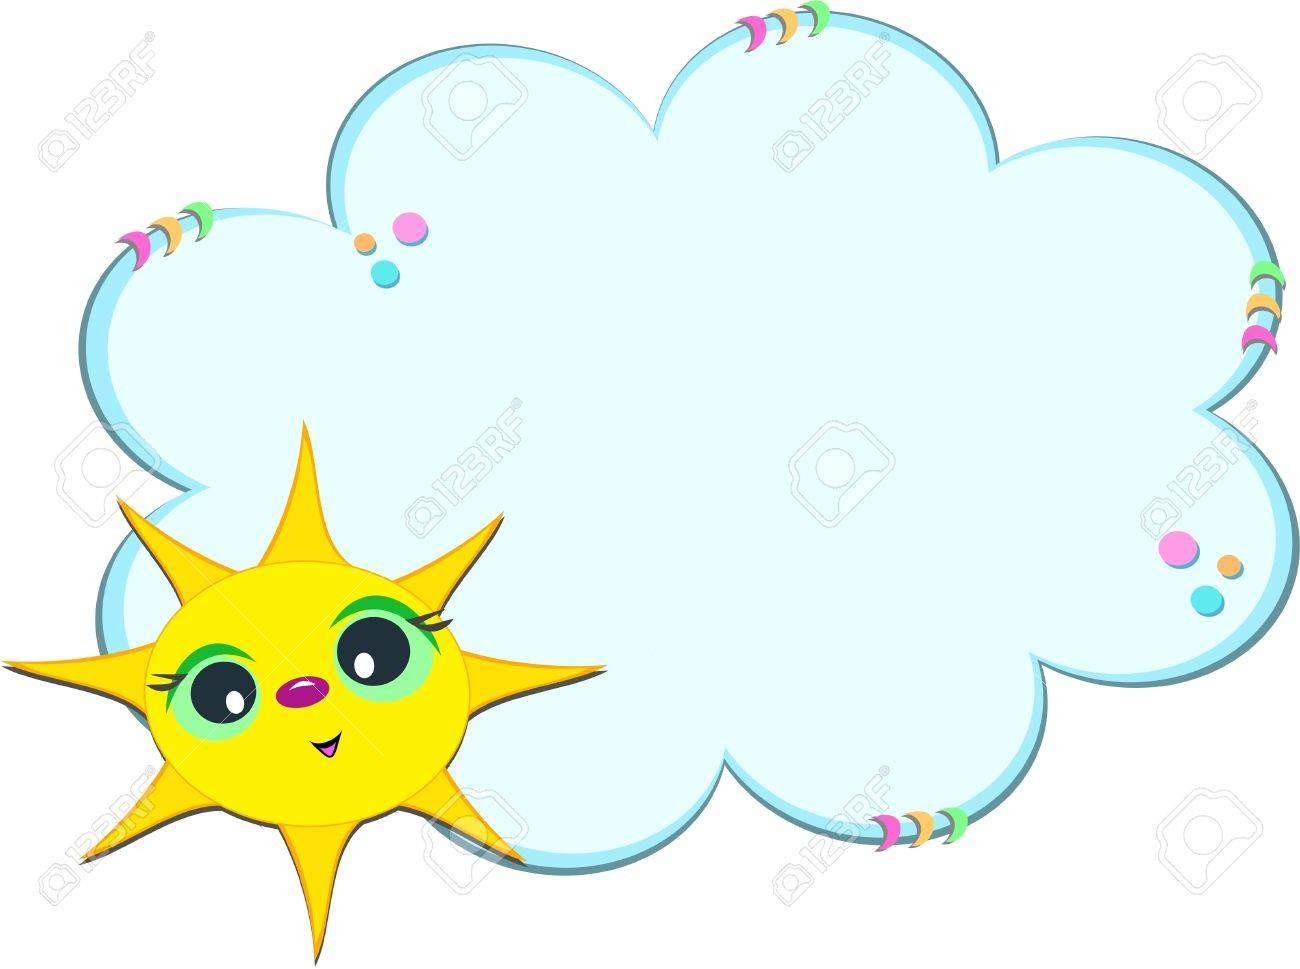 Sunny Cloud Frame Royalty Free Cliparts, Vectors, And Stock ...